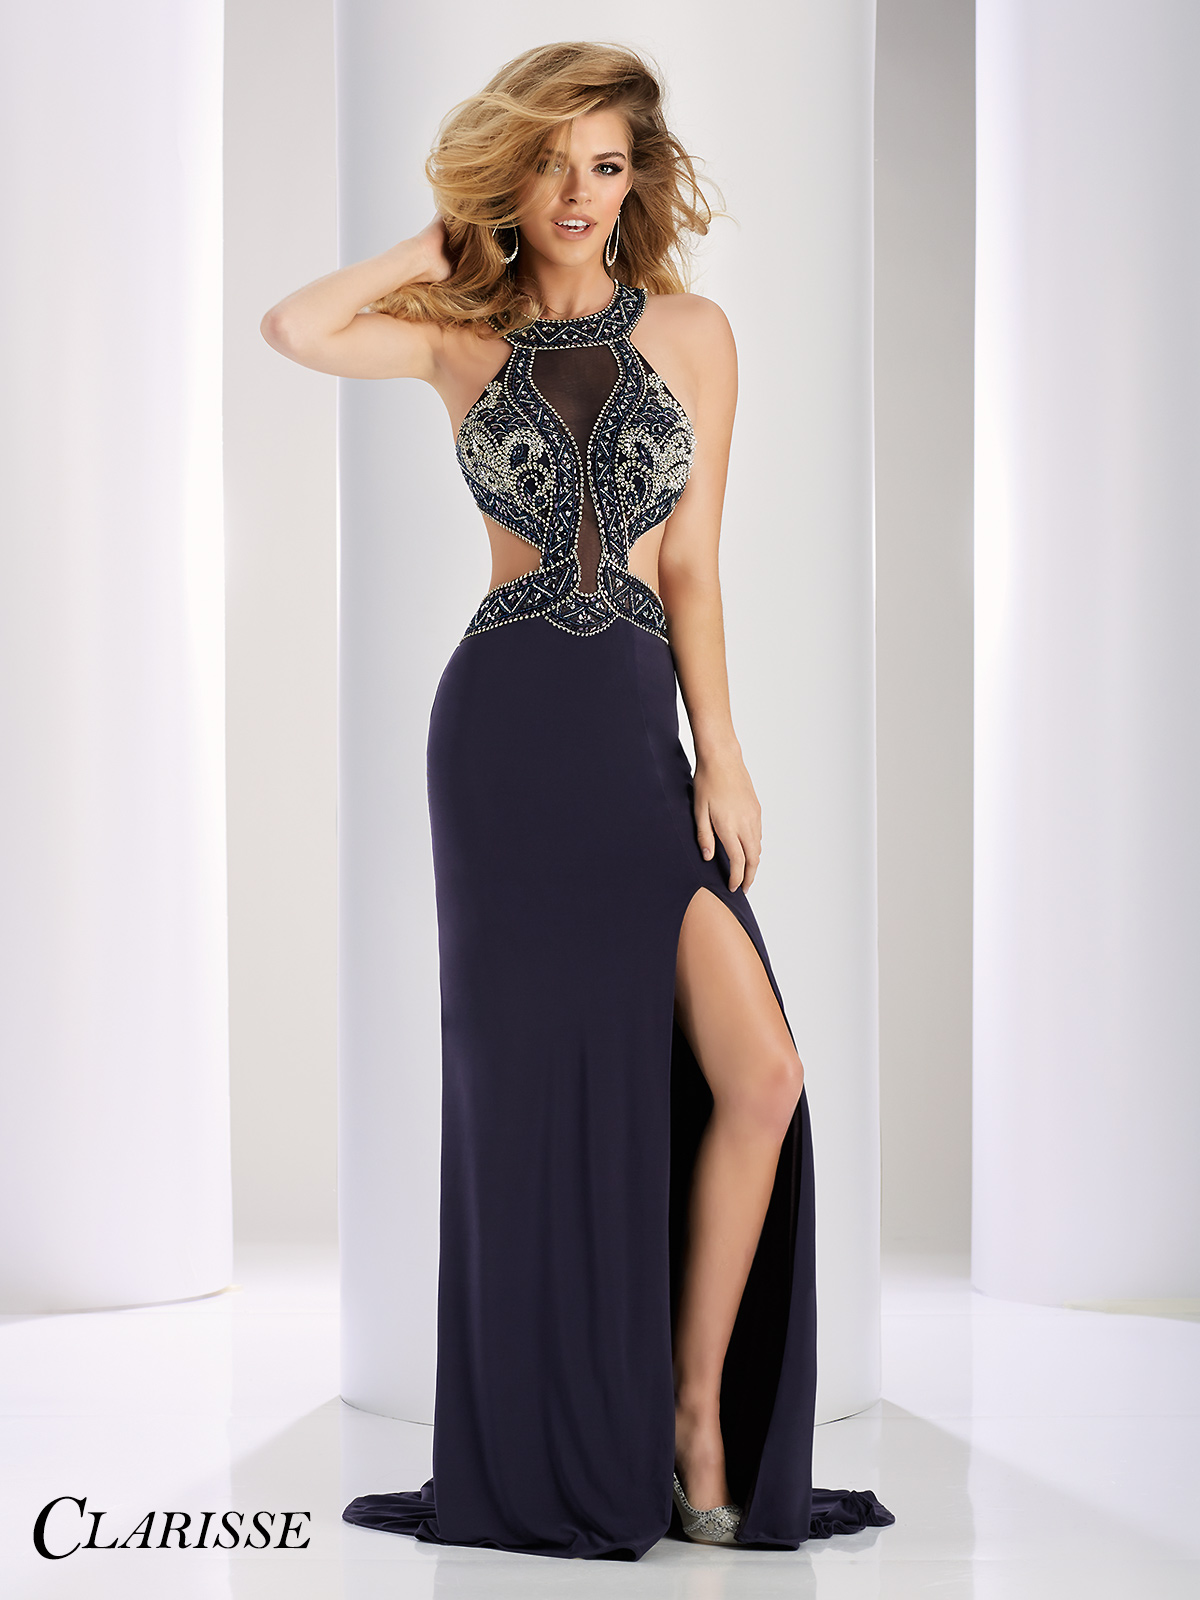 Silver Prom Dresses and Silver Formal Gowns | Promgirl.net